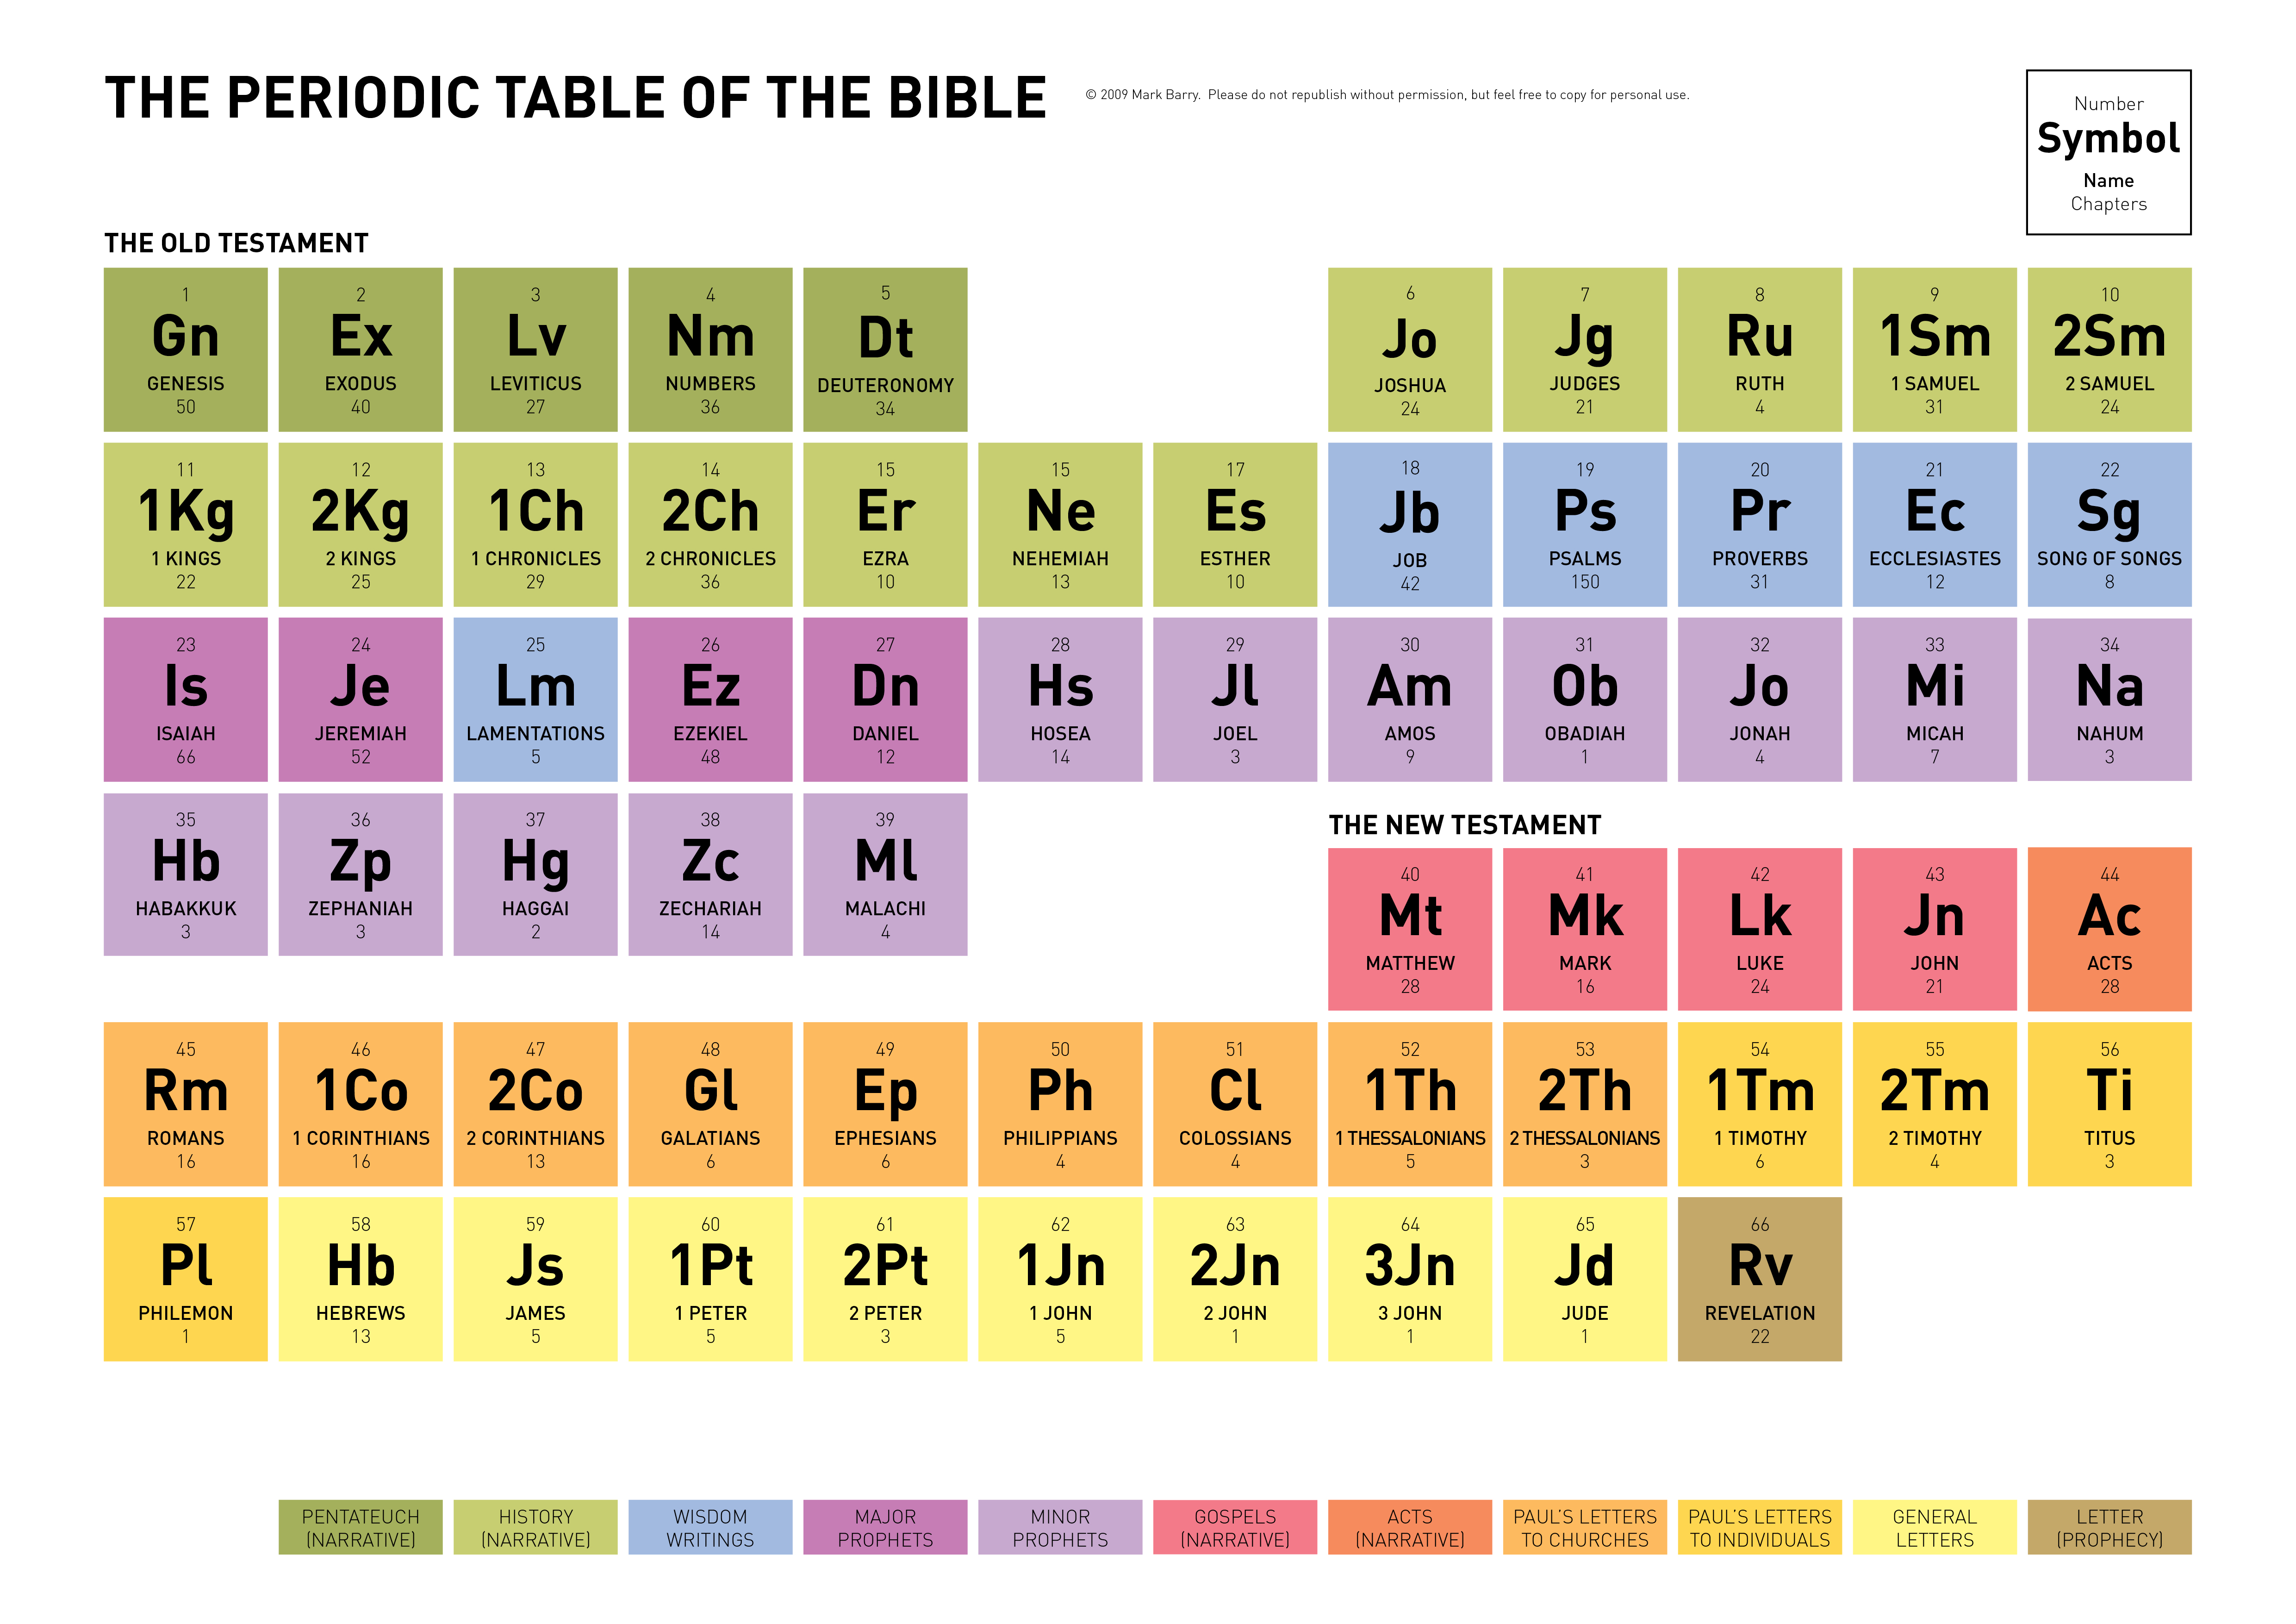 Periodic table of the bible adamlickey bibleperiodictable gamestrikefo Choice Image